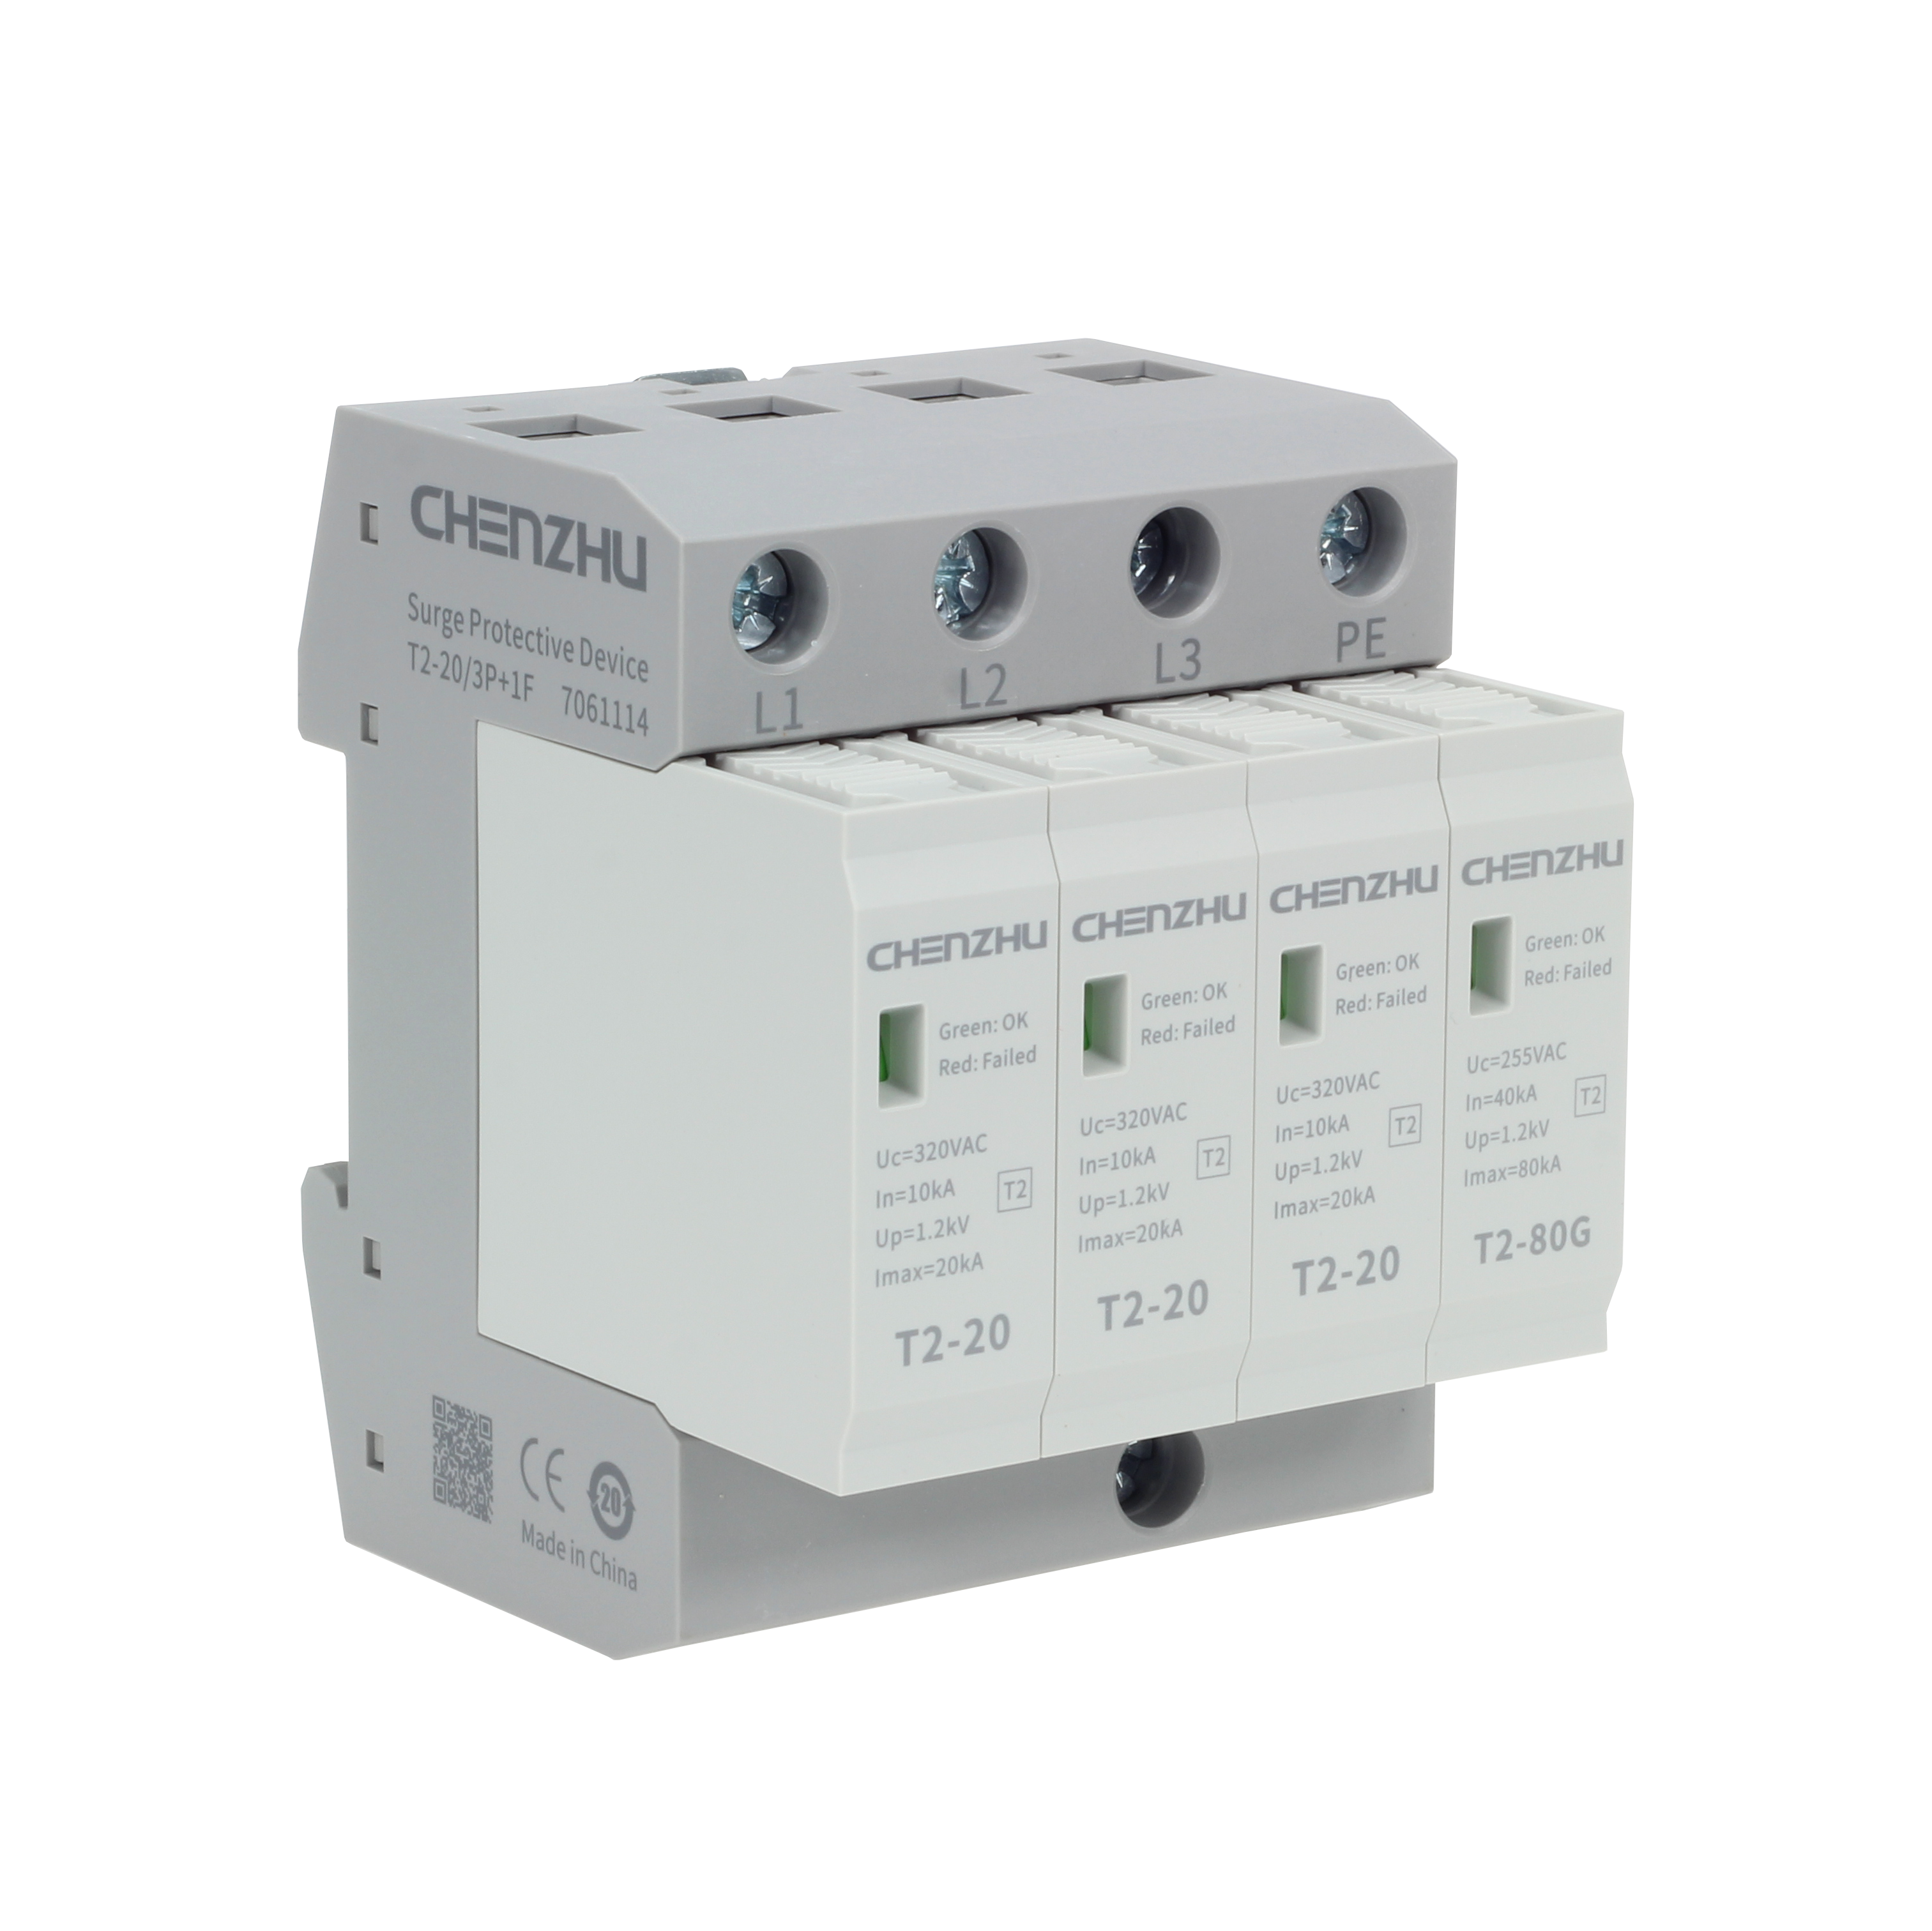 AC Power SPD (220/380VAC; Three phase TT; In=10kA; alarm output ) 7022163